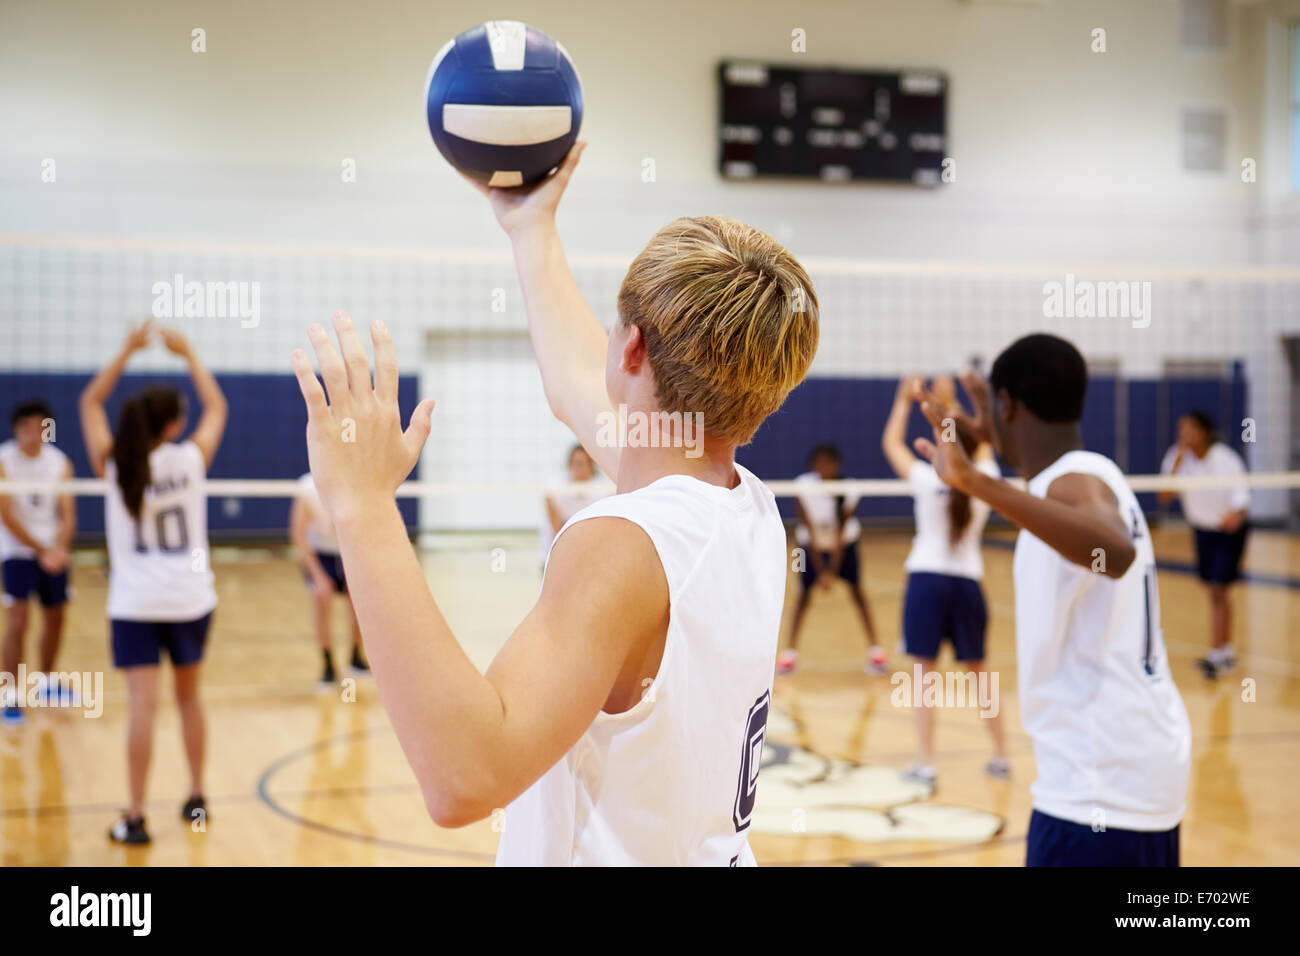 High School Volleyball Match en el gimnasio Imagen De Stock